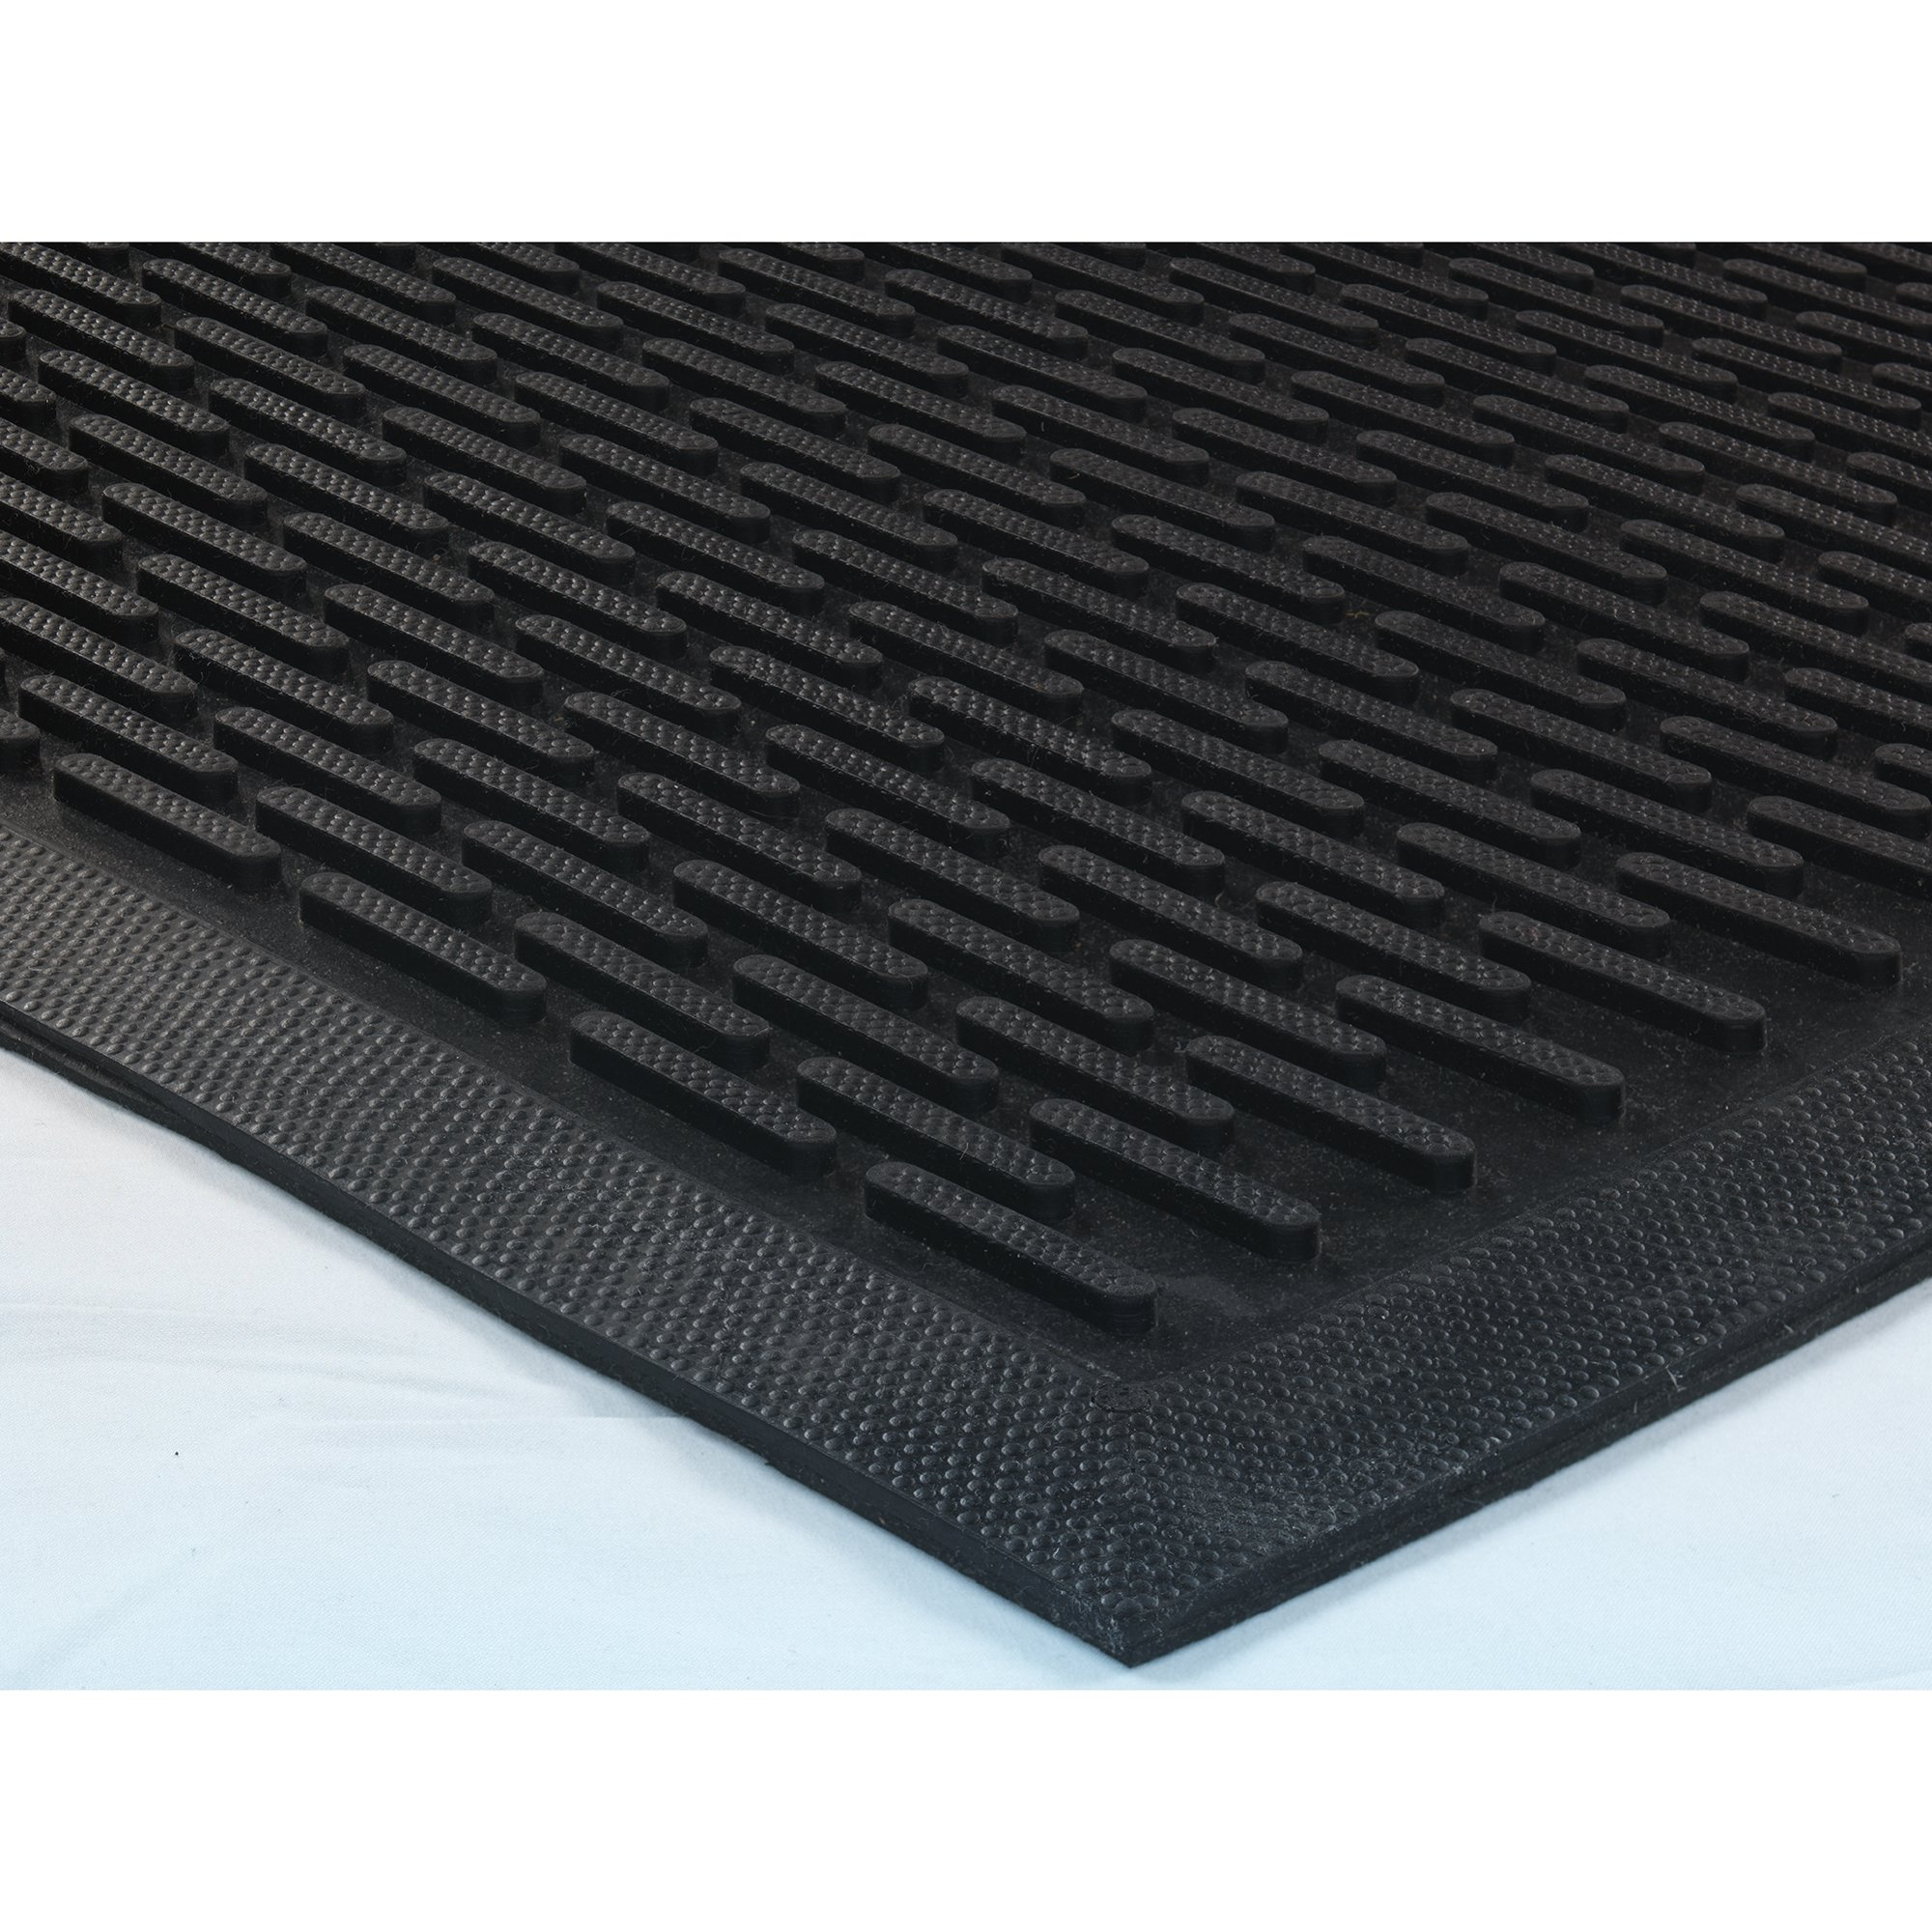 interesting for cingato mats sunset com stylish floor magnificent with forever waterproof intended car cool